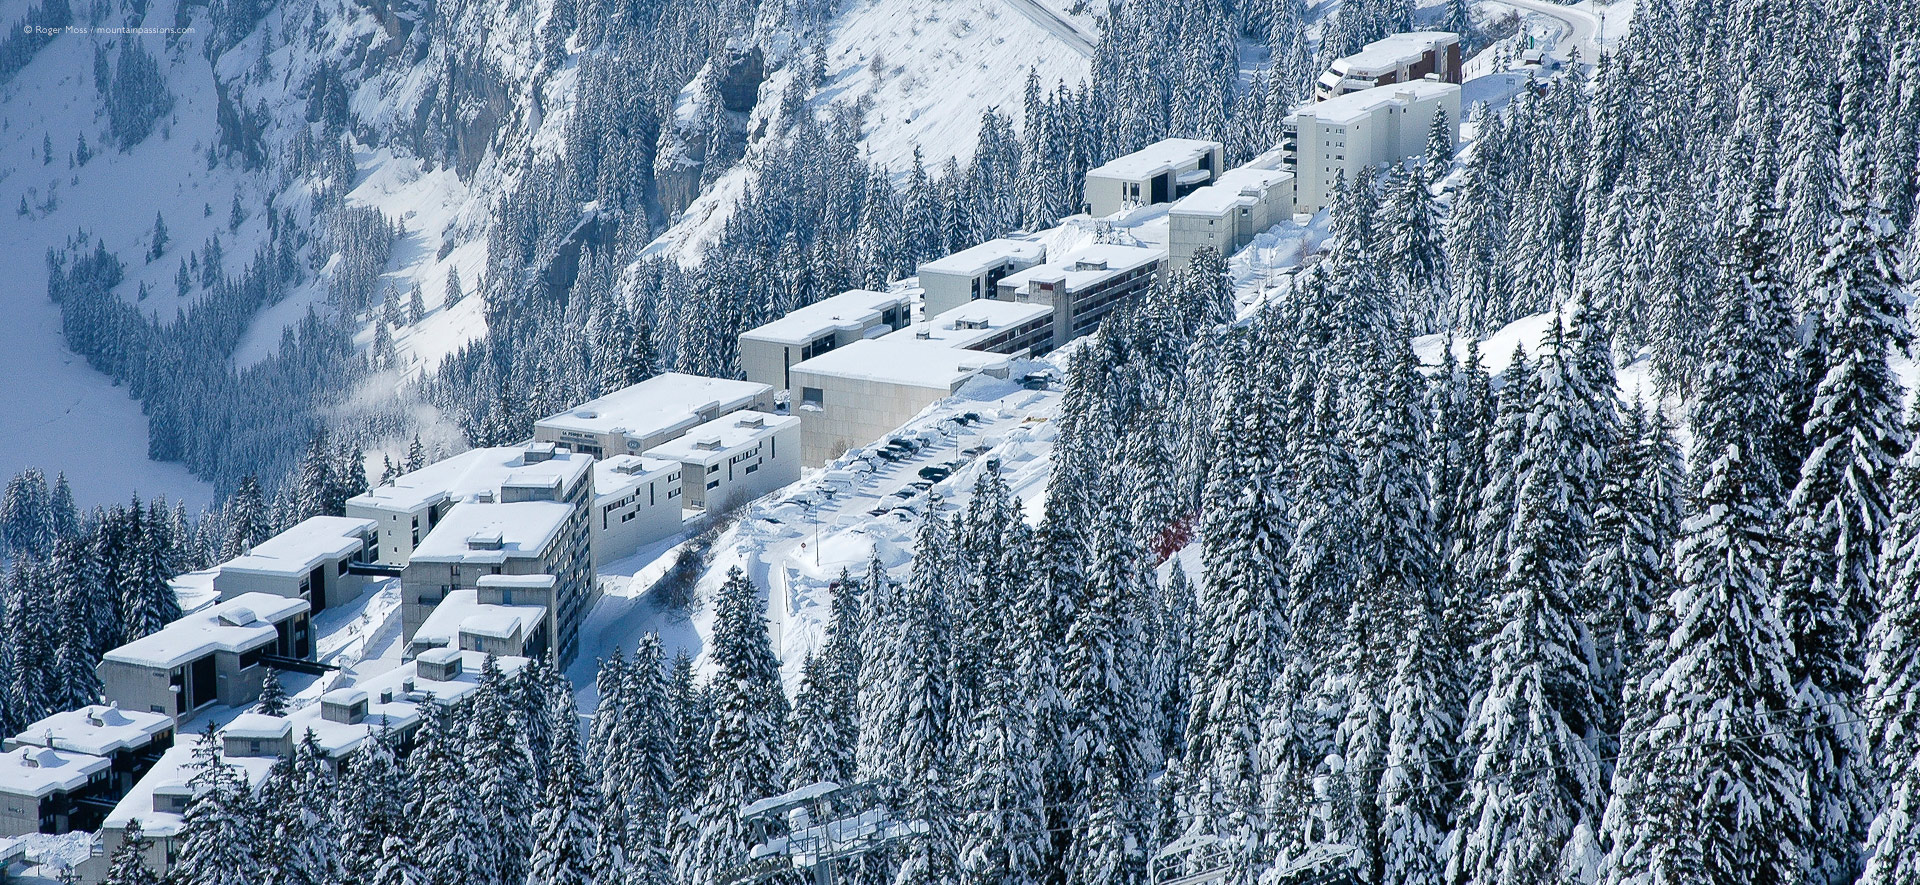 Bird's-eye view of snow-covered apartment blocks an pine forests at Flaine-la-Foret, French Alps.